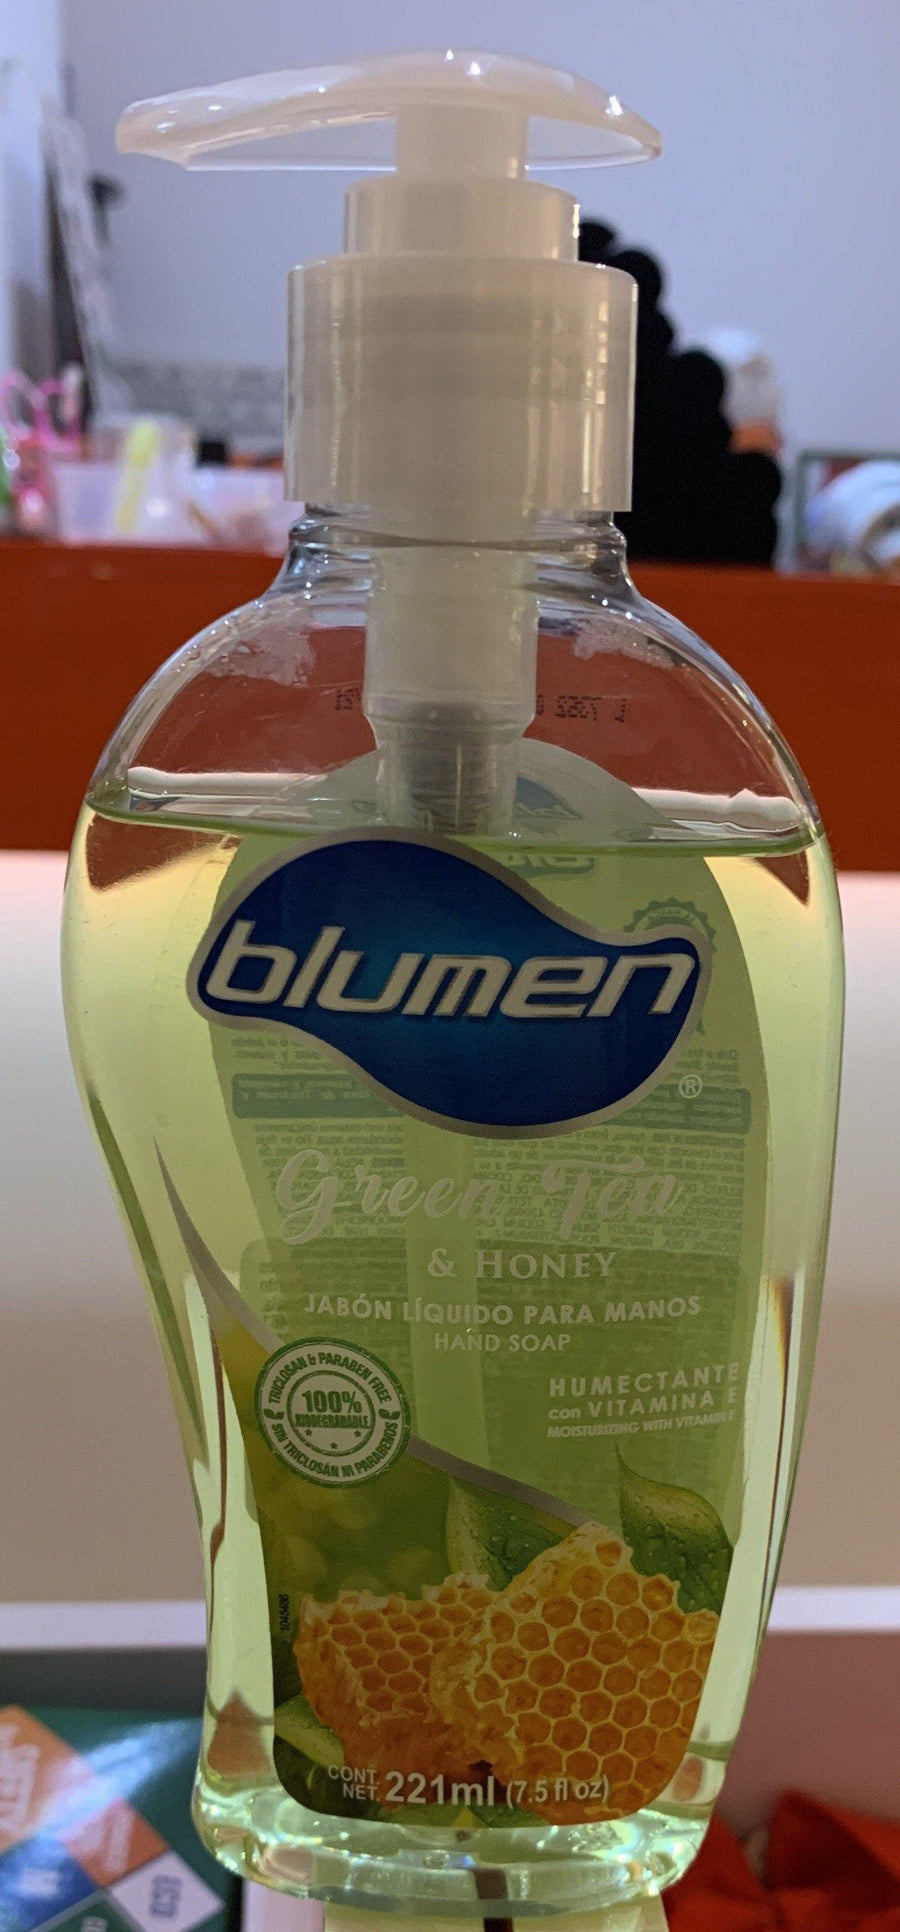 BLUMEN JABON ANTIBACTERIAL 221ML Green Tea